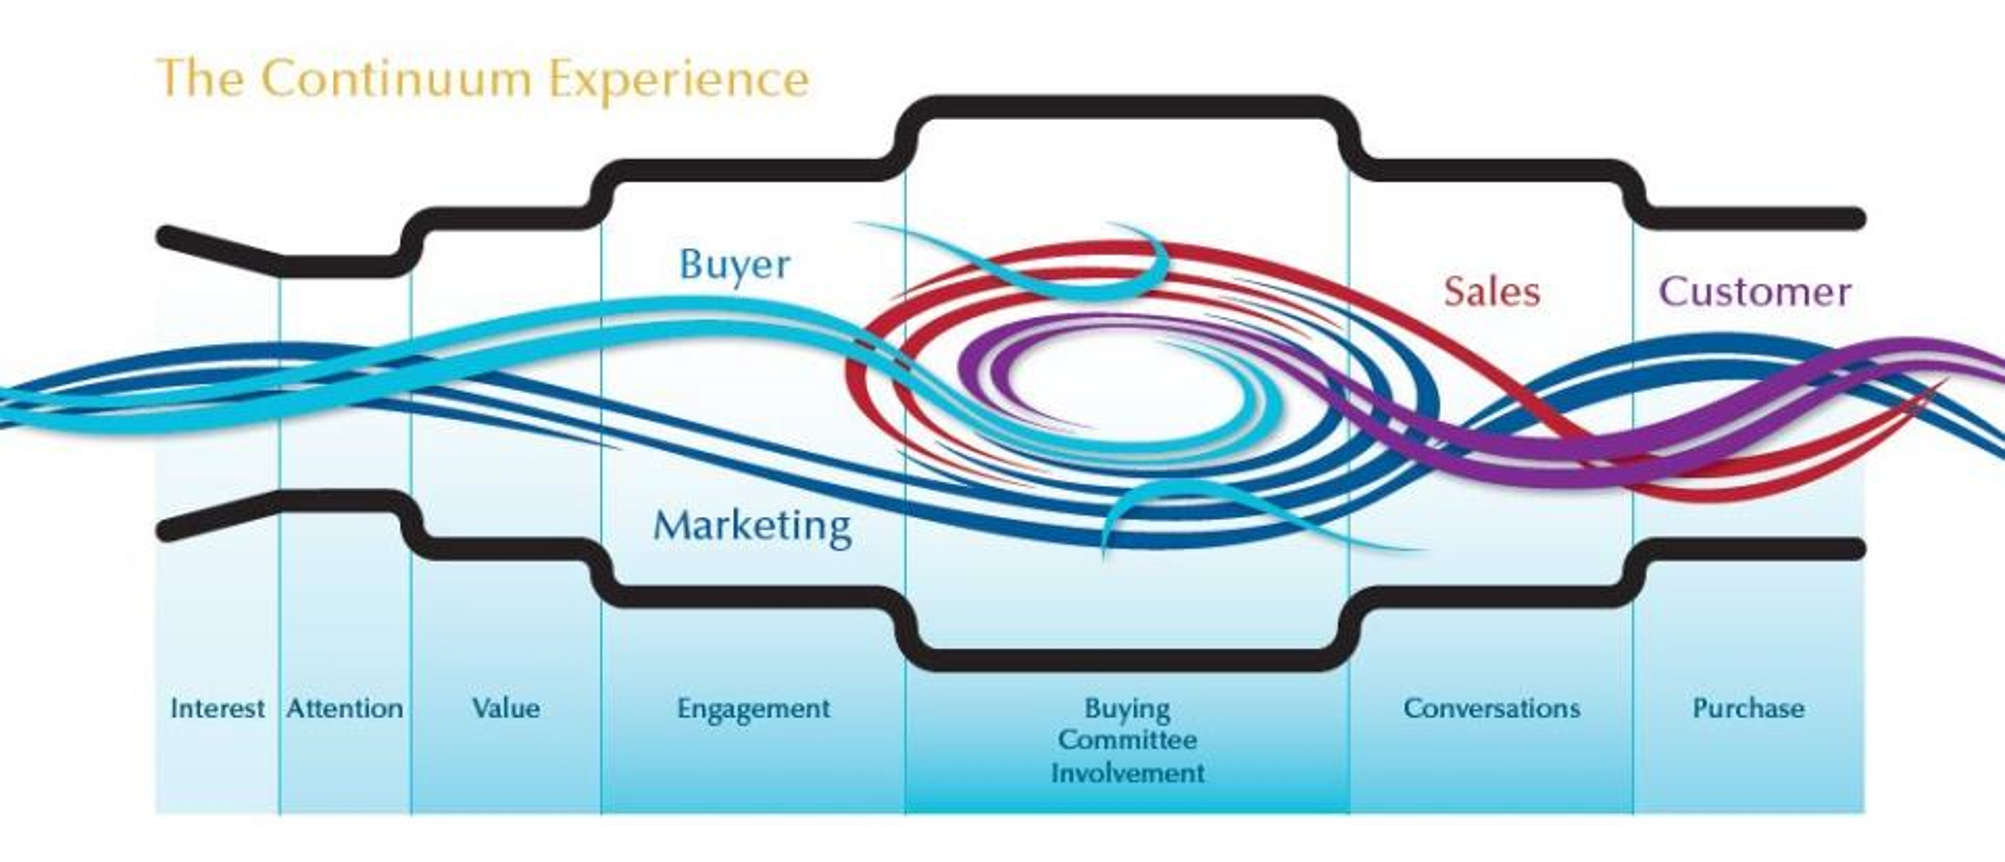 B2B marketing continuum